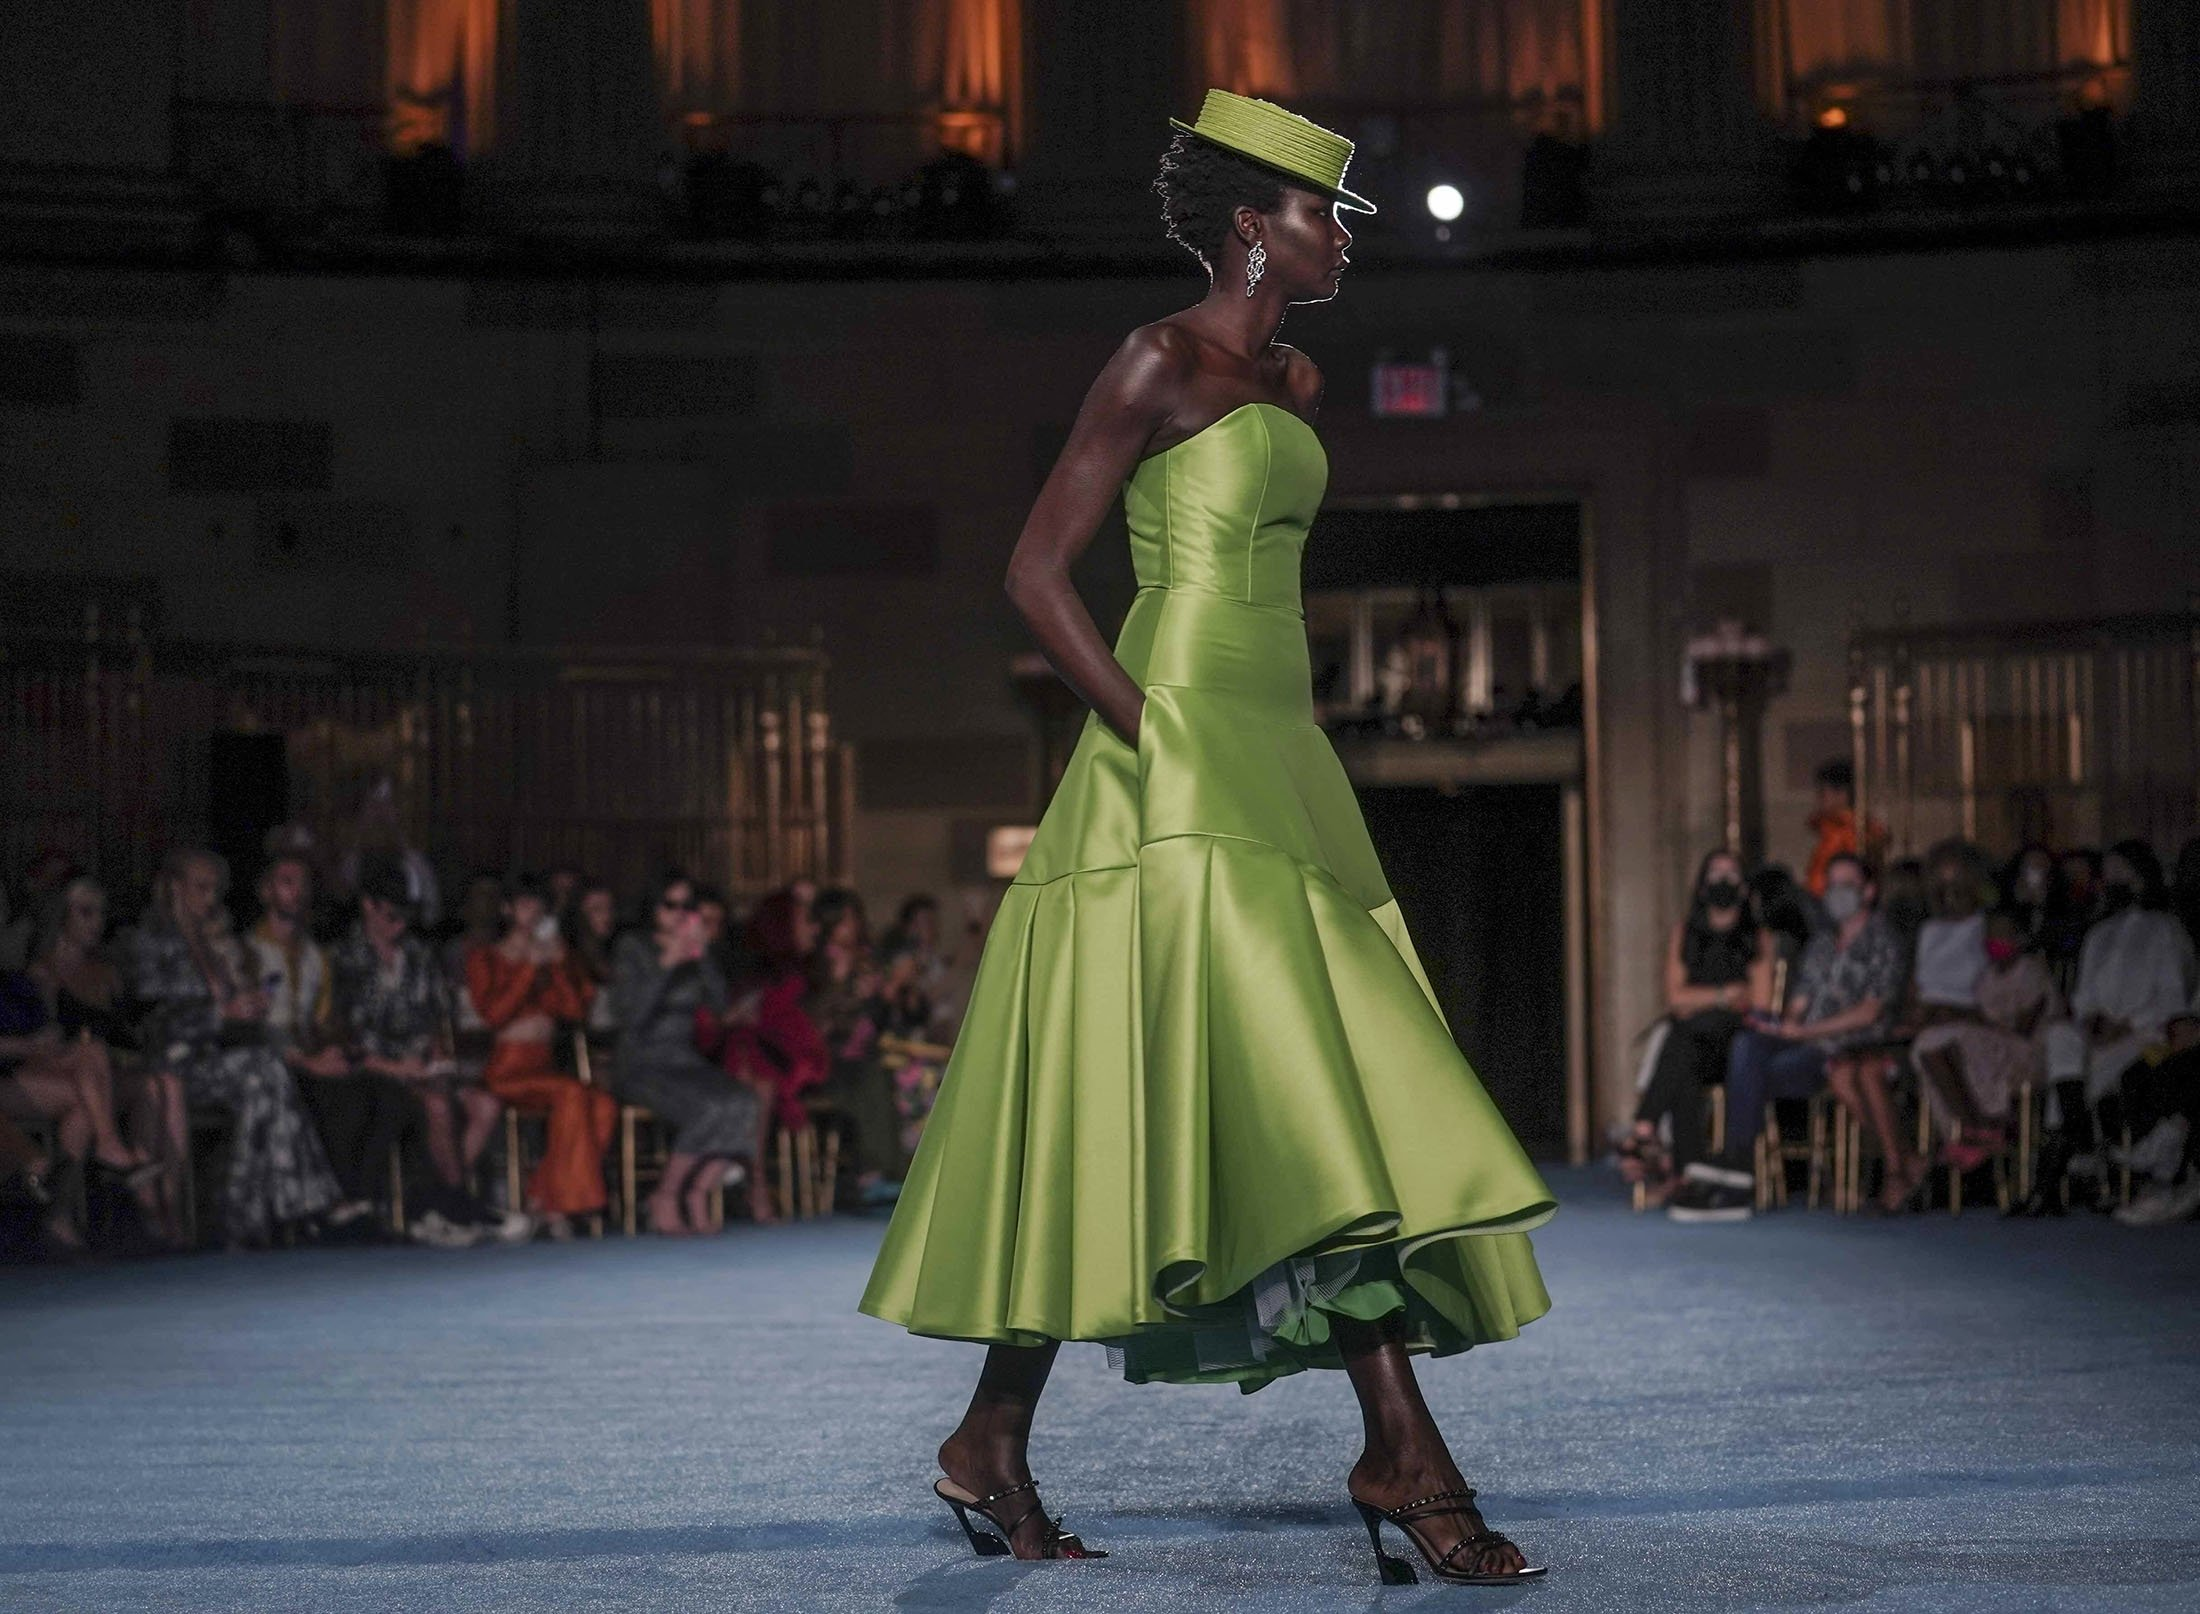 The latest fashion from Christian Siriano is modeled during New York's Fashion Week, New York, U.S., Sept. 7, 2021. (AP Photo)